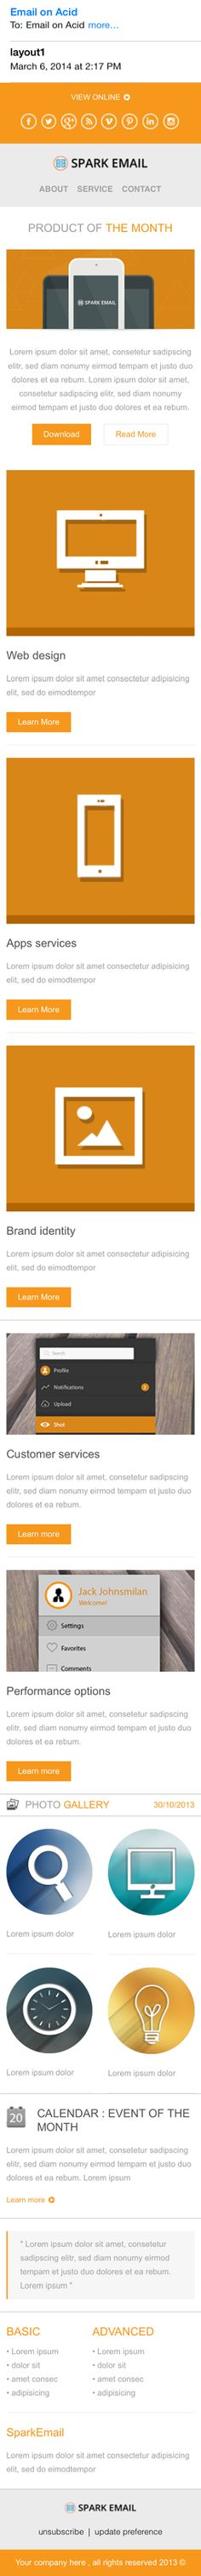 Free Responsive Email Template by Spark Email